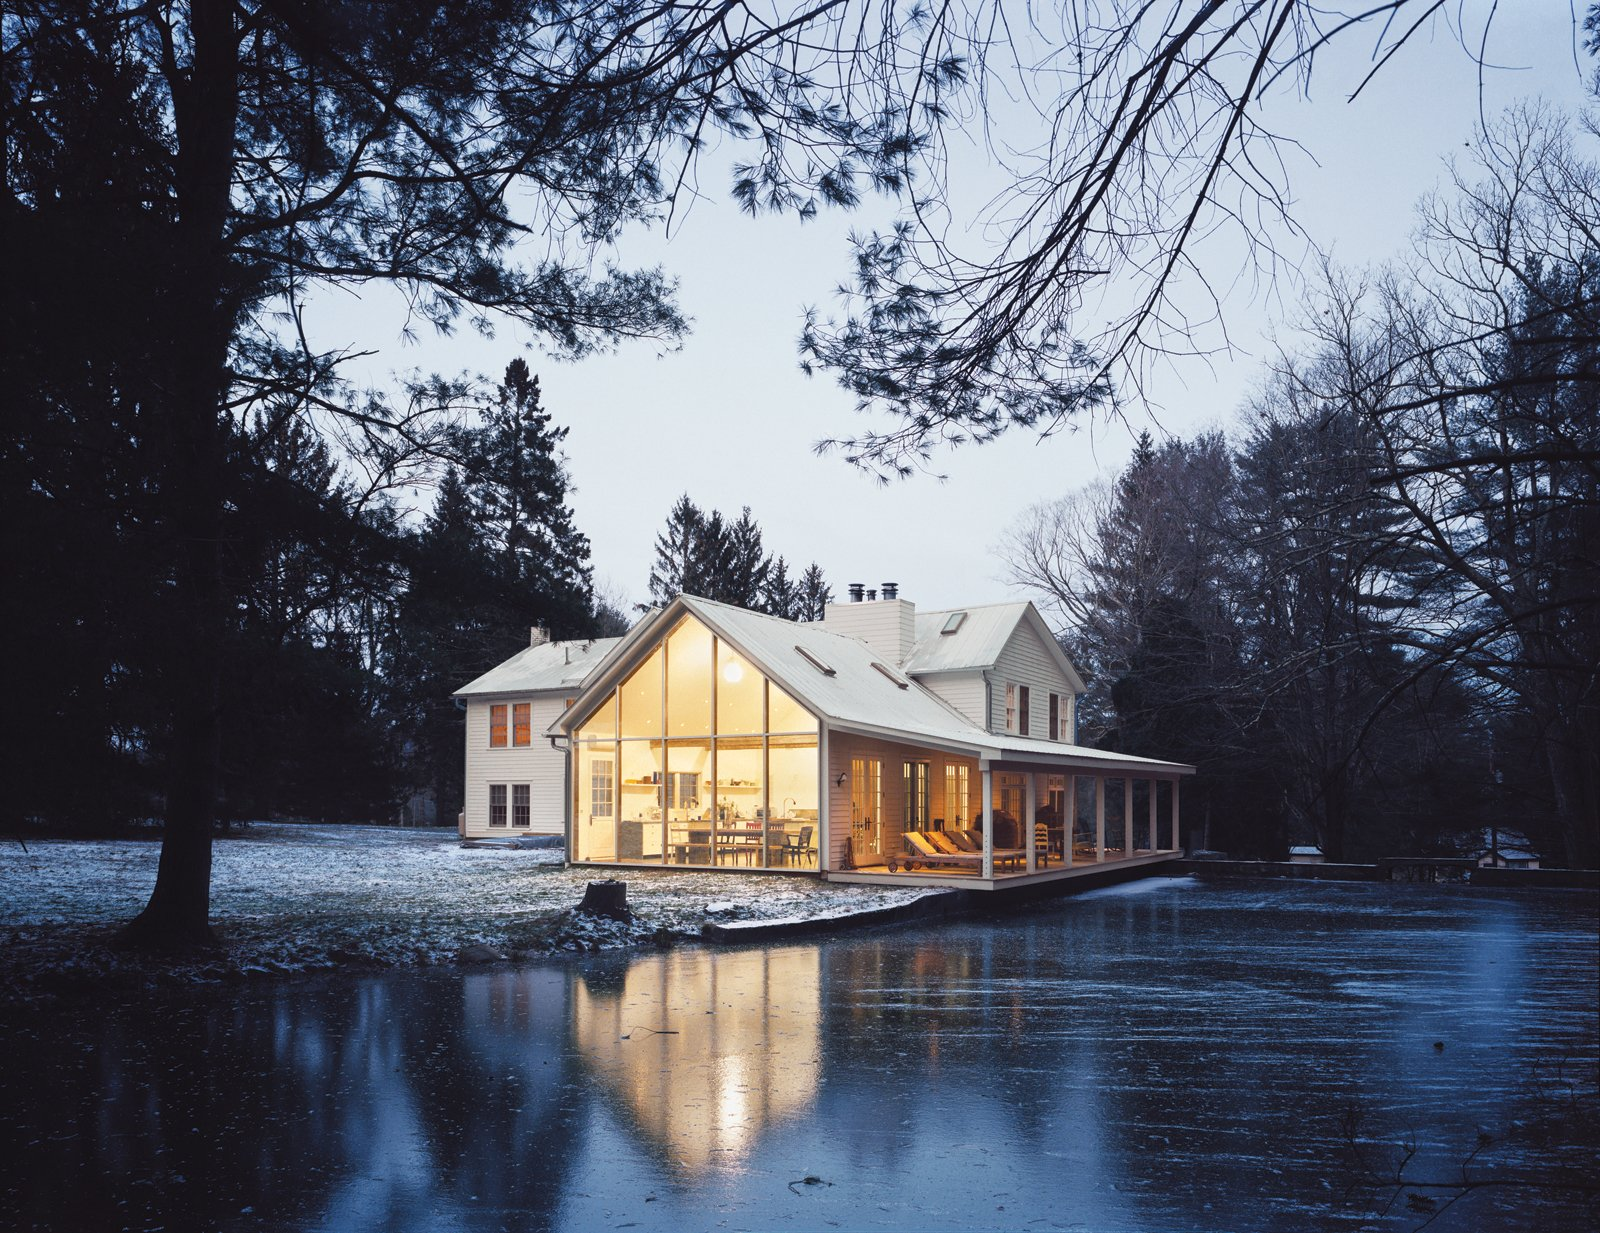 Nicknamed the Floating Farmhouse, this 200-year-old home inspired one former copywriter to delve into architecture as a living. Inside, renovator and owner Tom Givone mixes vintage and industrial decor. Photo by Mark Mahaney. Tagged: Exterior, House, Wood Siding Material, and Cabin Building Type.  Photo 5 of 12 in Hope Floats